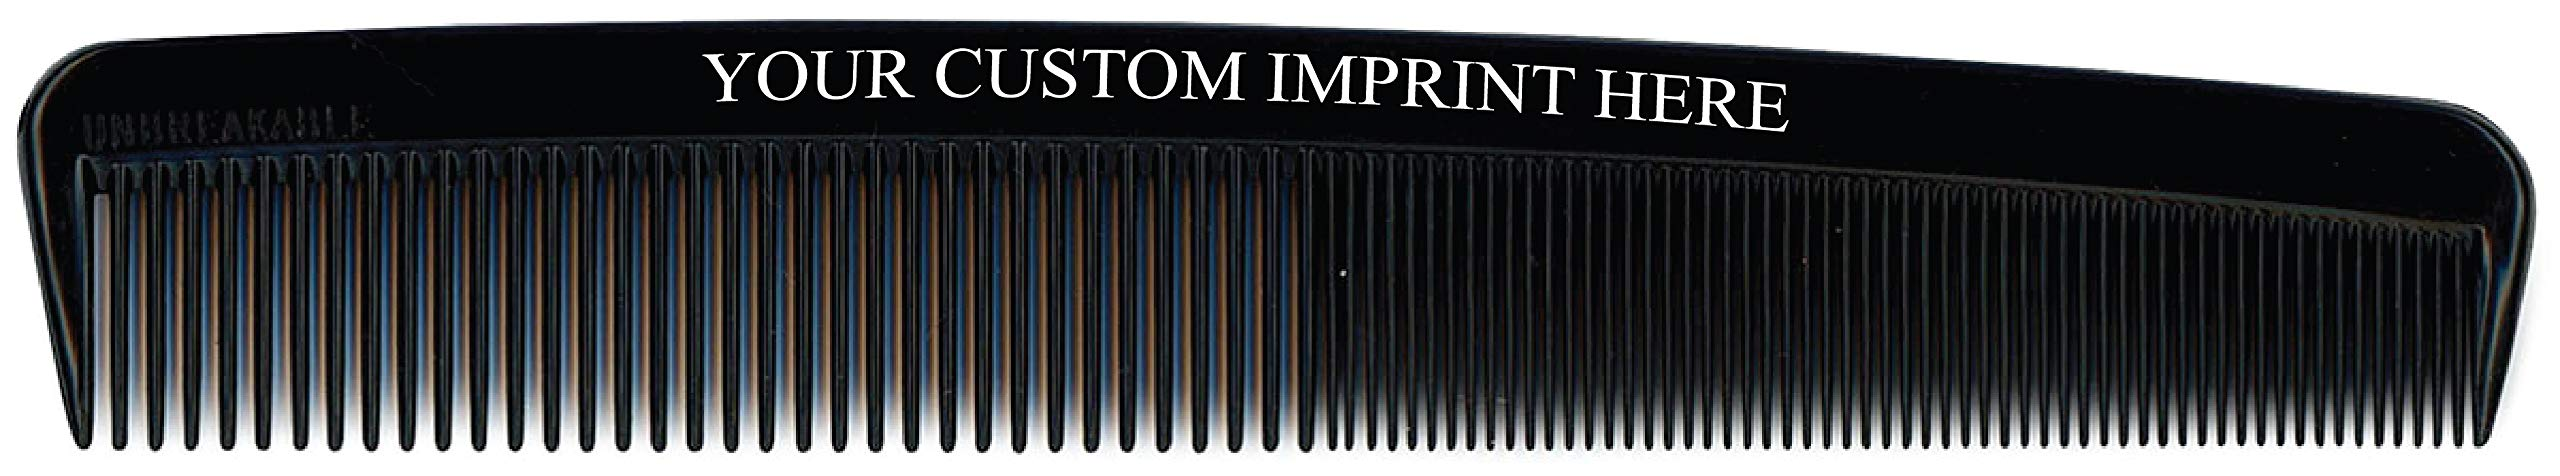 Custom Printed 7'' Unbreakable Dresser Combs (250 count) - Personalized Barber & Salon Style Hair Combs - Personalized Promotional Giveaways